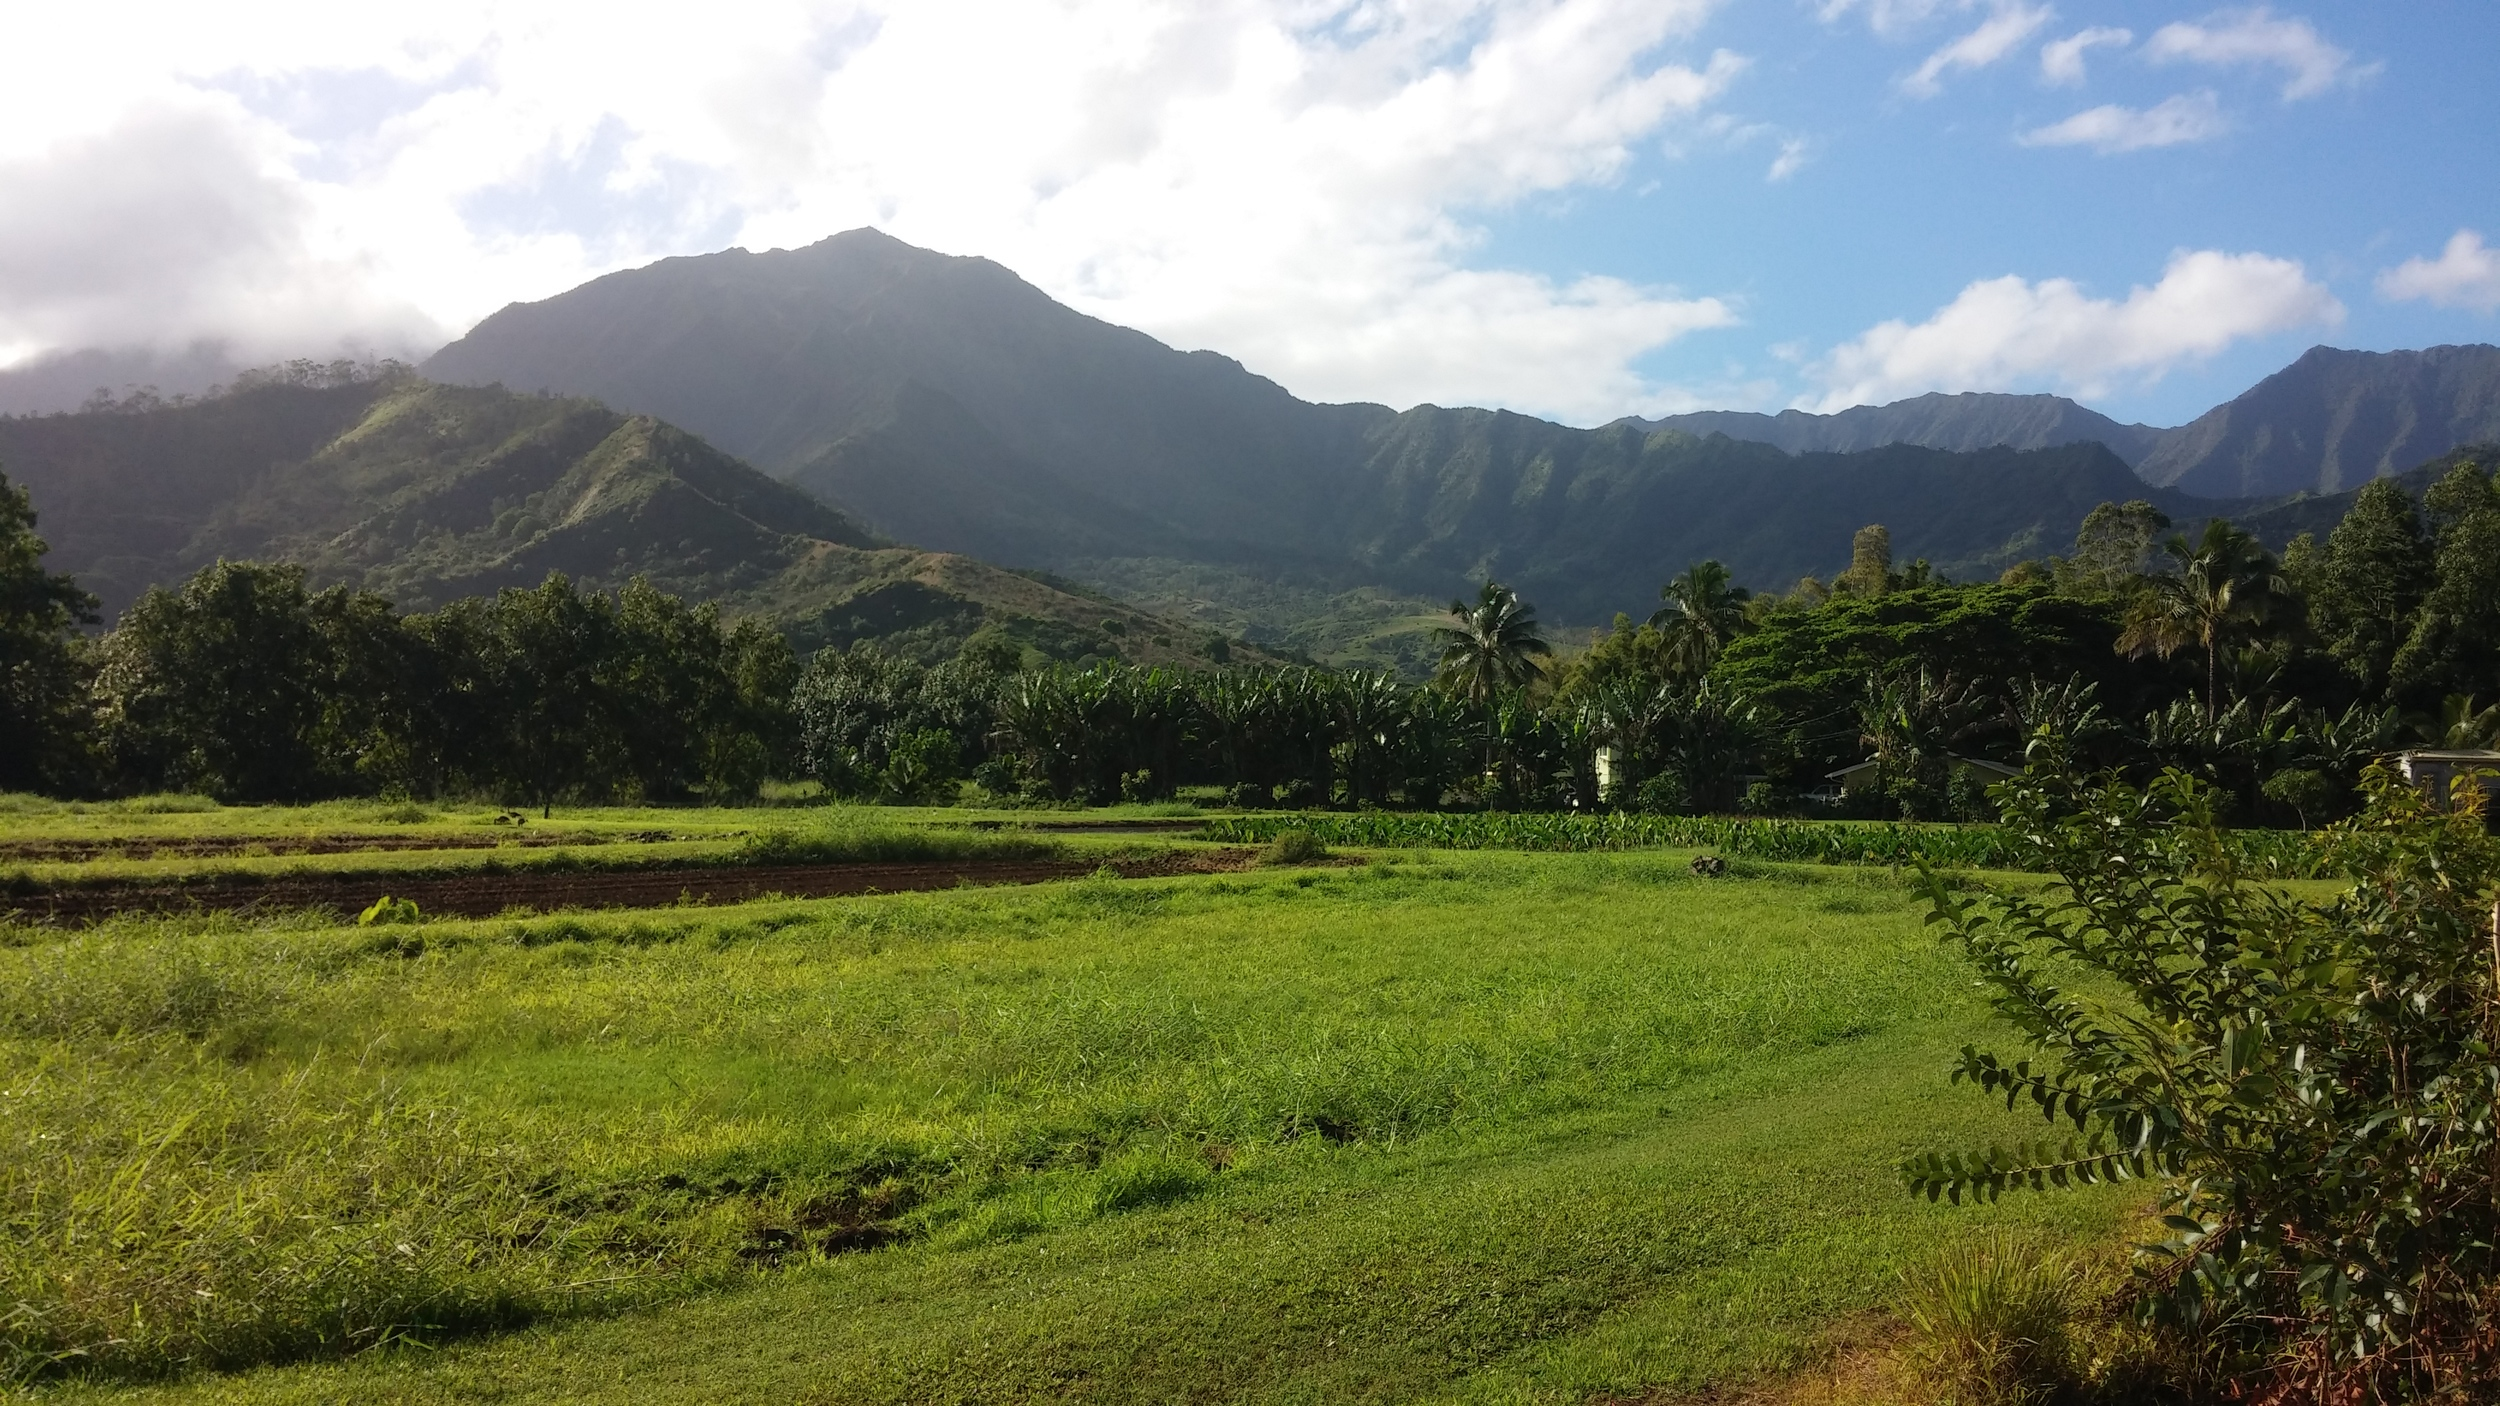 Loi fields with the original Hawaiians' irrigation system. Spectacular!